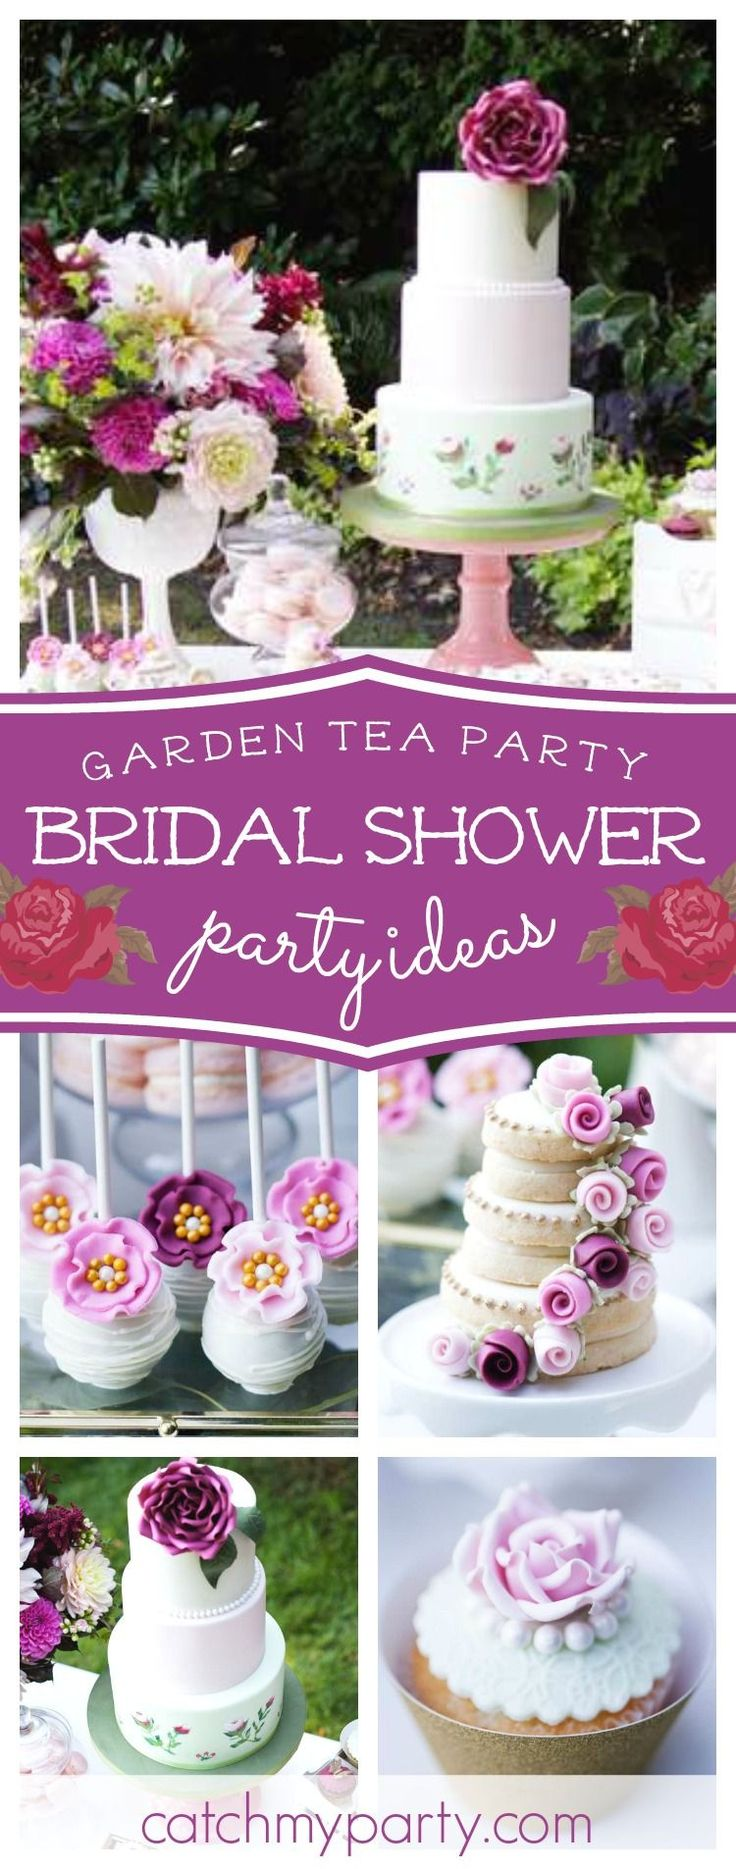 Step into this secret garden and take a look at this beautiful Tea Party Baby Shower! The cake pops are exquisite!!  See more party ideas and share yours at CatchMyParty.com #catchmyparty #partyideas #teaparty #gardenparty #vintage